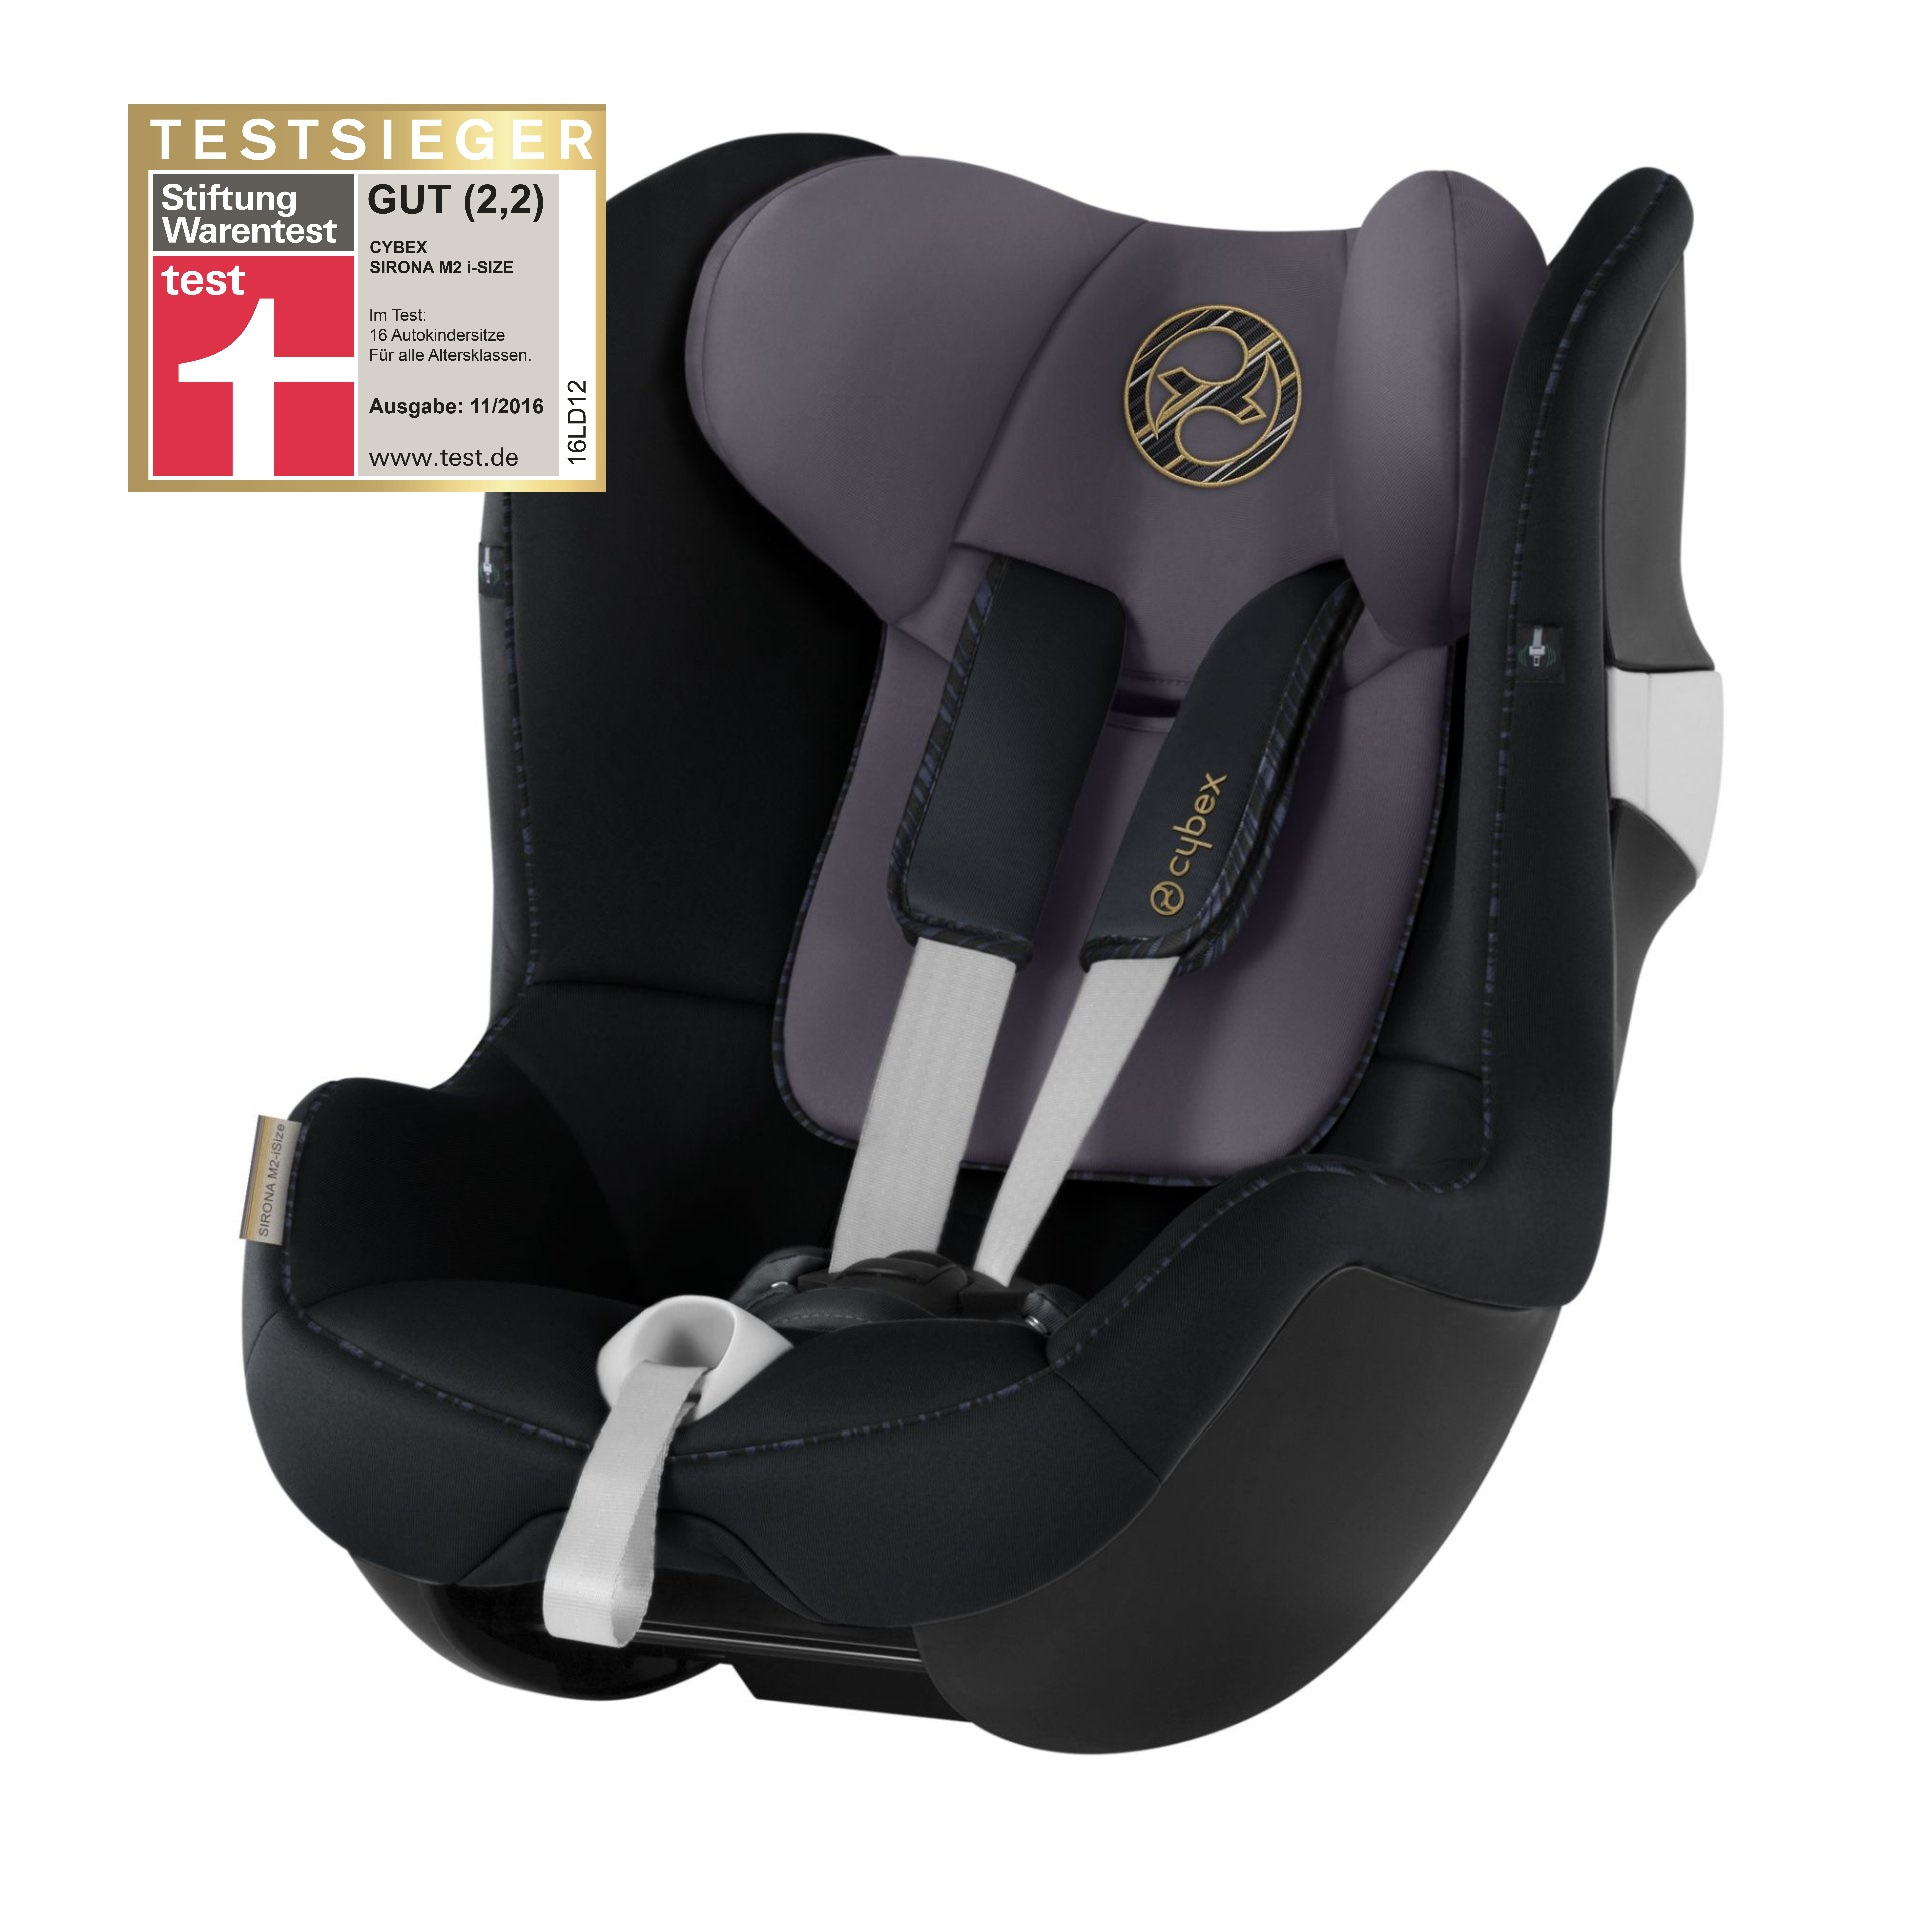 cybex child car seat sirona m2 i size buy at kidsroom. Black Bedroom Furniture Sets. Home Design Ideas